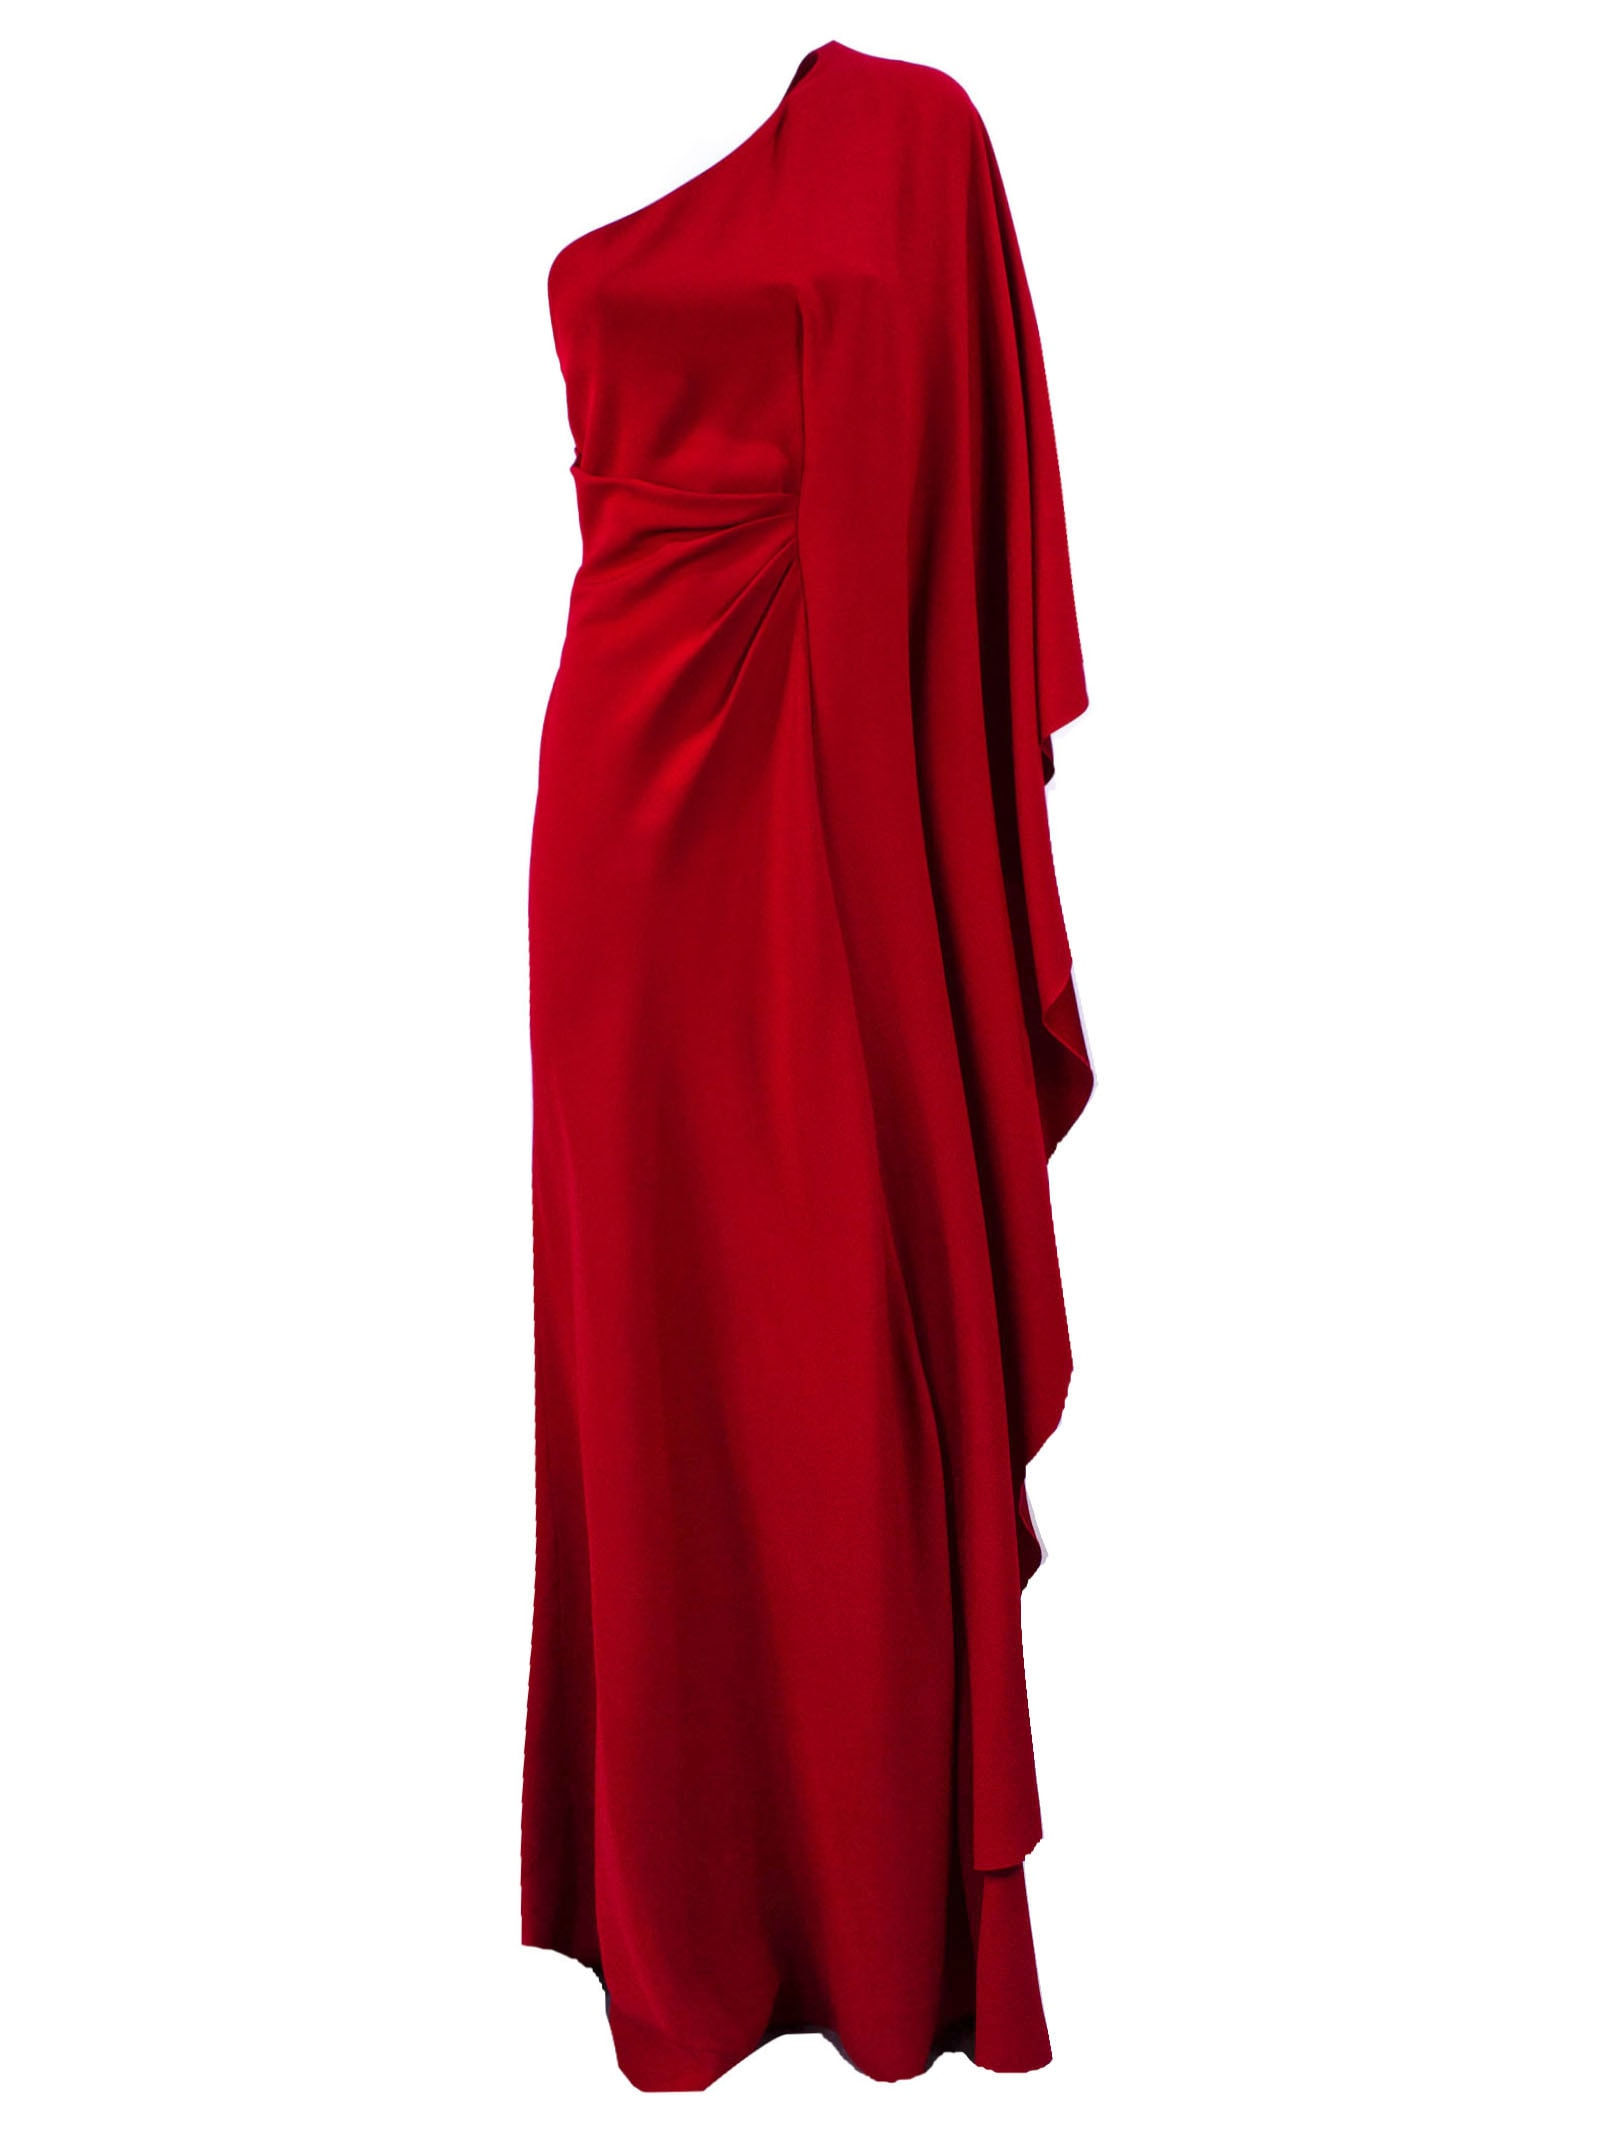 Alberta Ferretti Red Asymmetric Dress